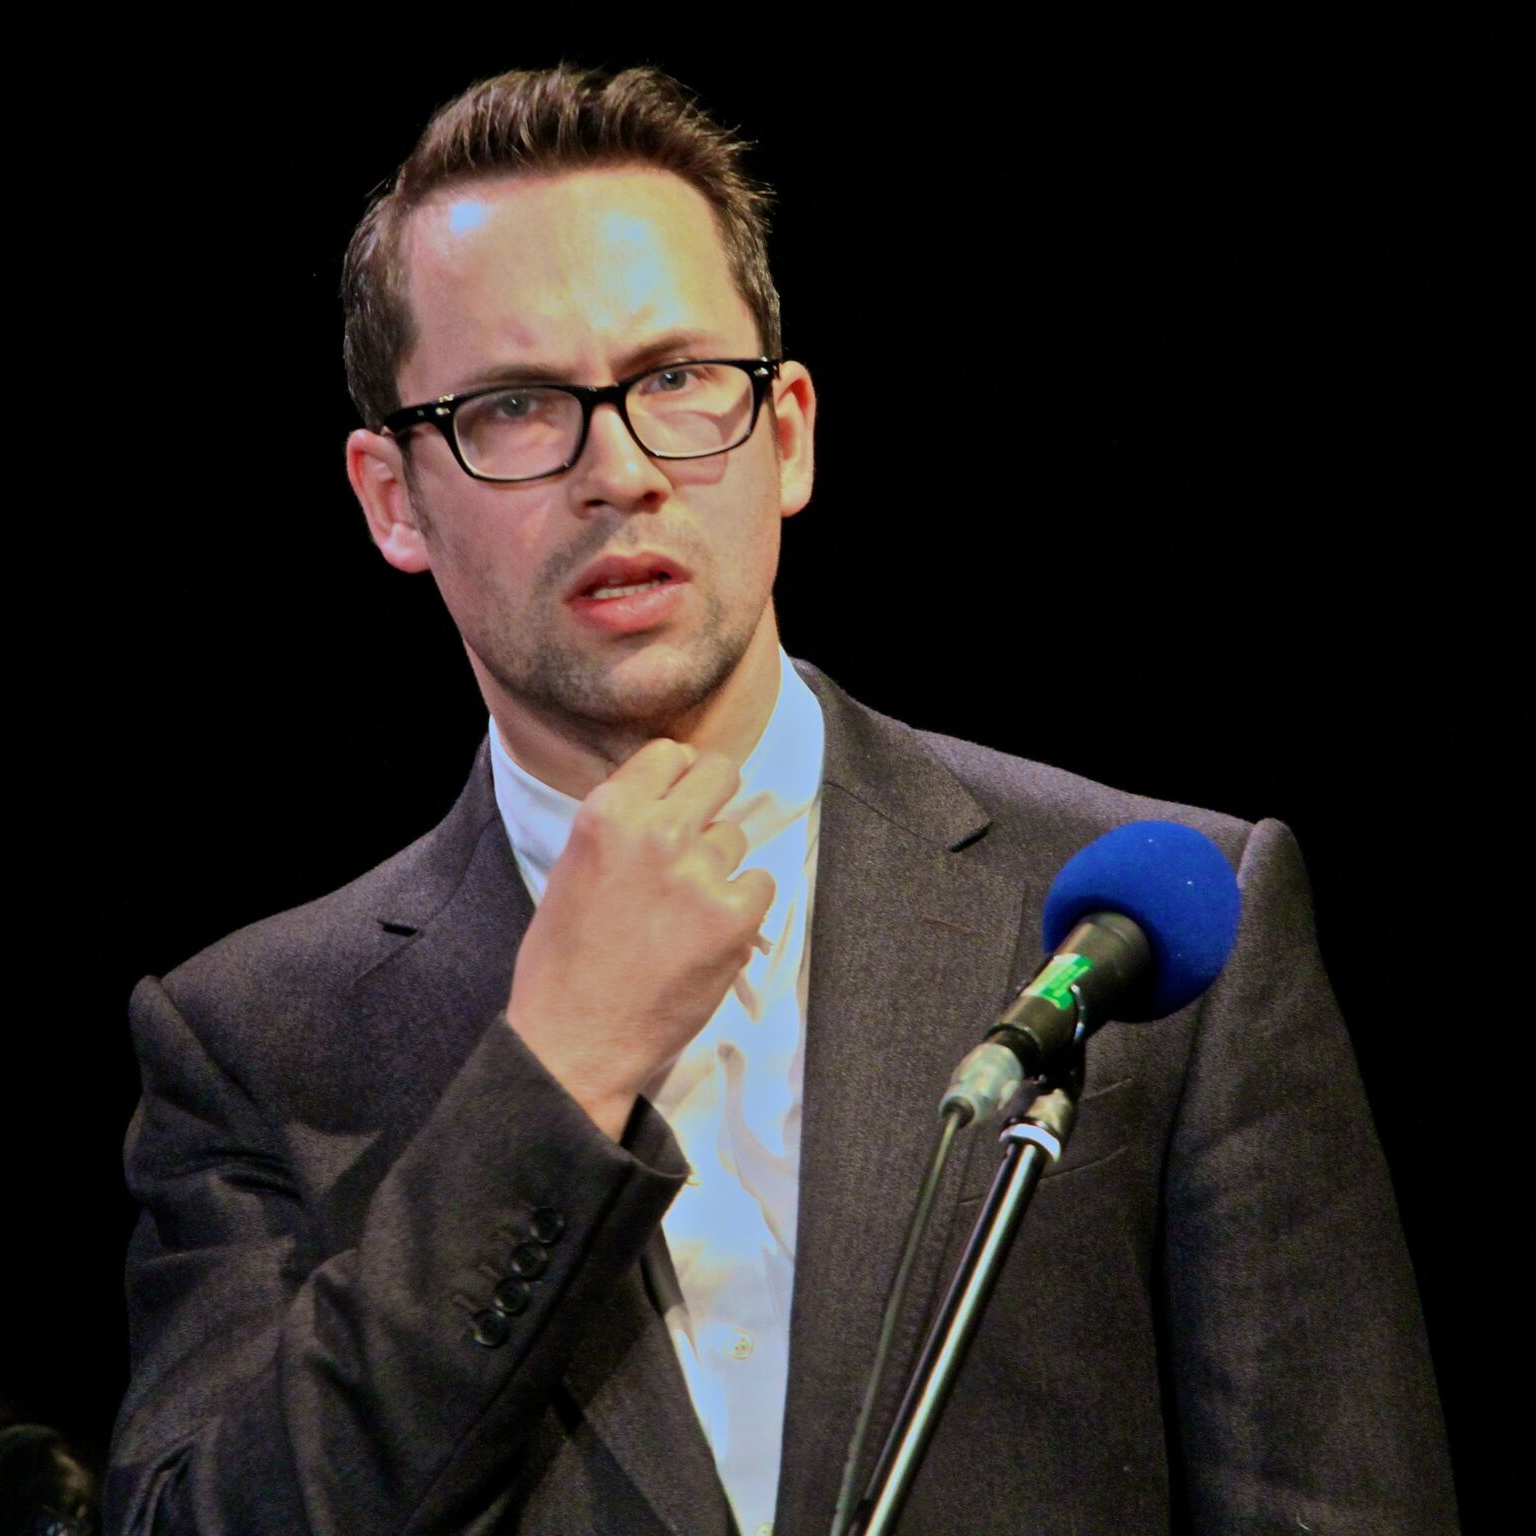 Max Olesker - Richard Snark     Max Olesker writes and performs around the world as one half of comedy duo  Max & Ivan  as well as appearing in BBC comedy shows such as W1A. He is a co-founder of improv school  The Free Association , and his writing can be found in magazines for the remaining six months print media continues to exist.